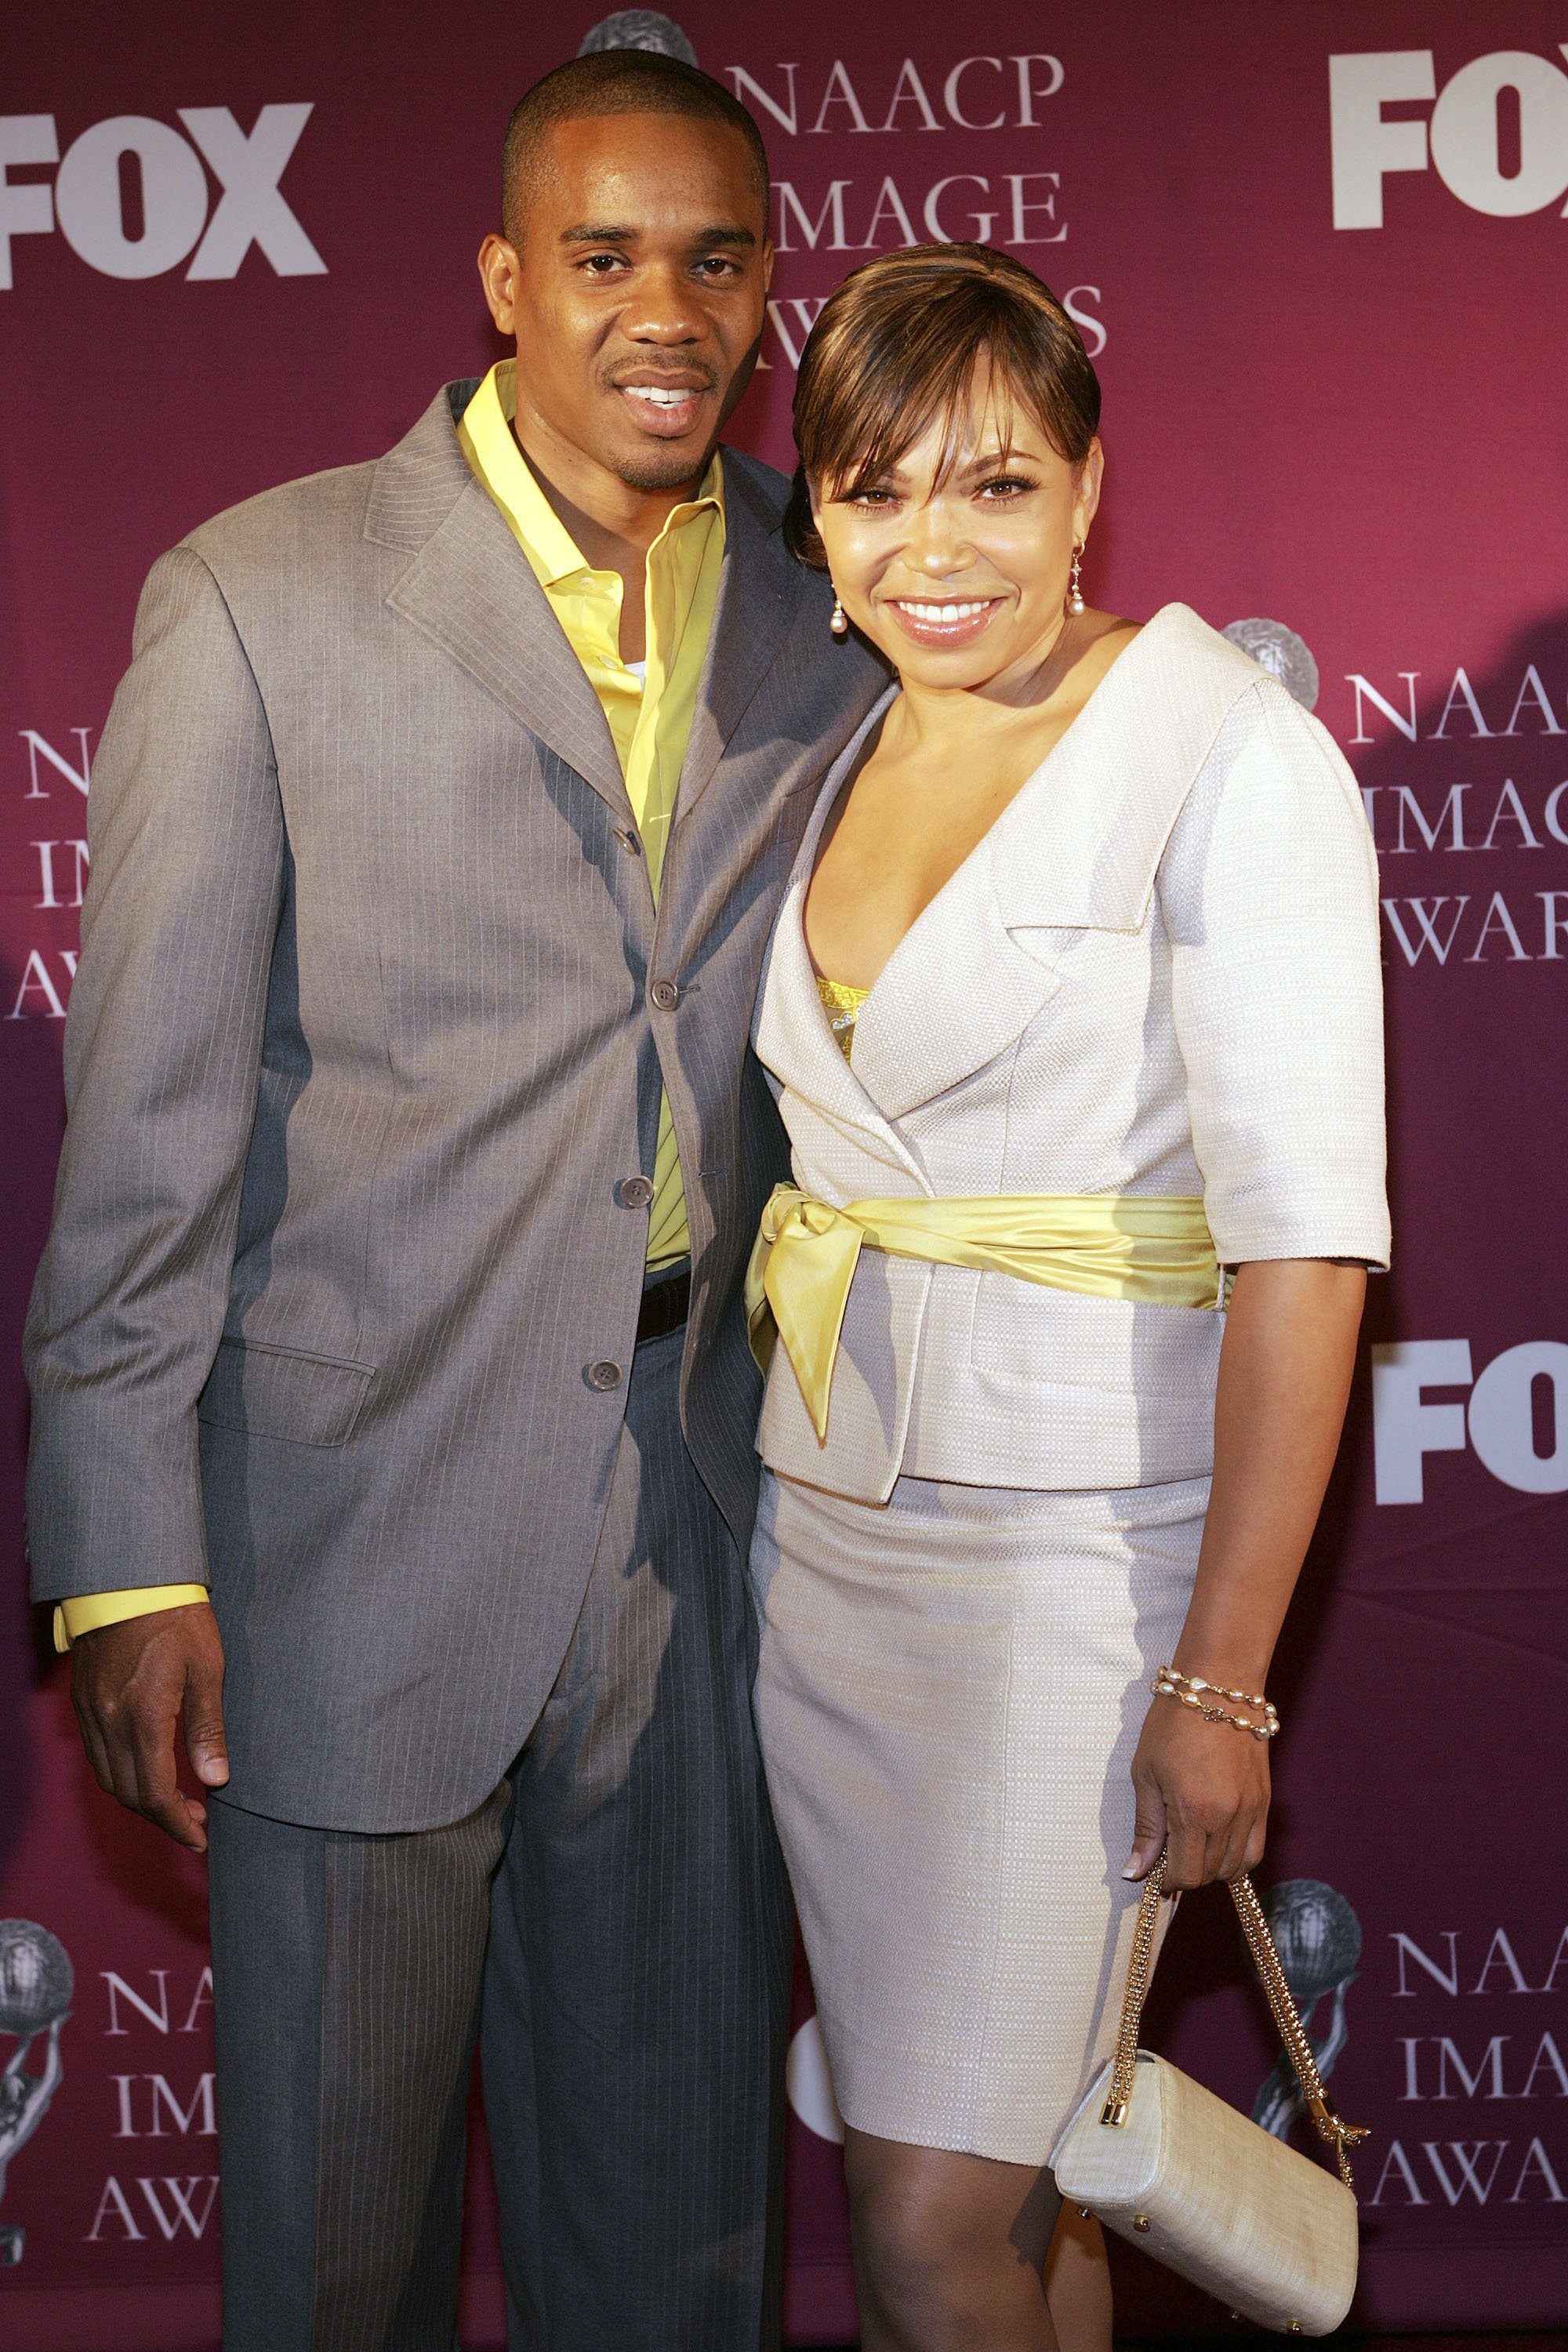 Duane Martin and Tisha Campbell when they were still married in 2005. | Photo: Getty Images